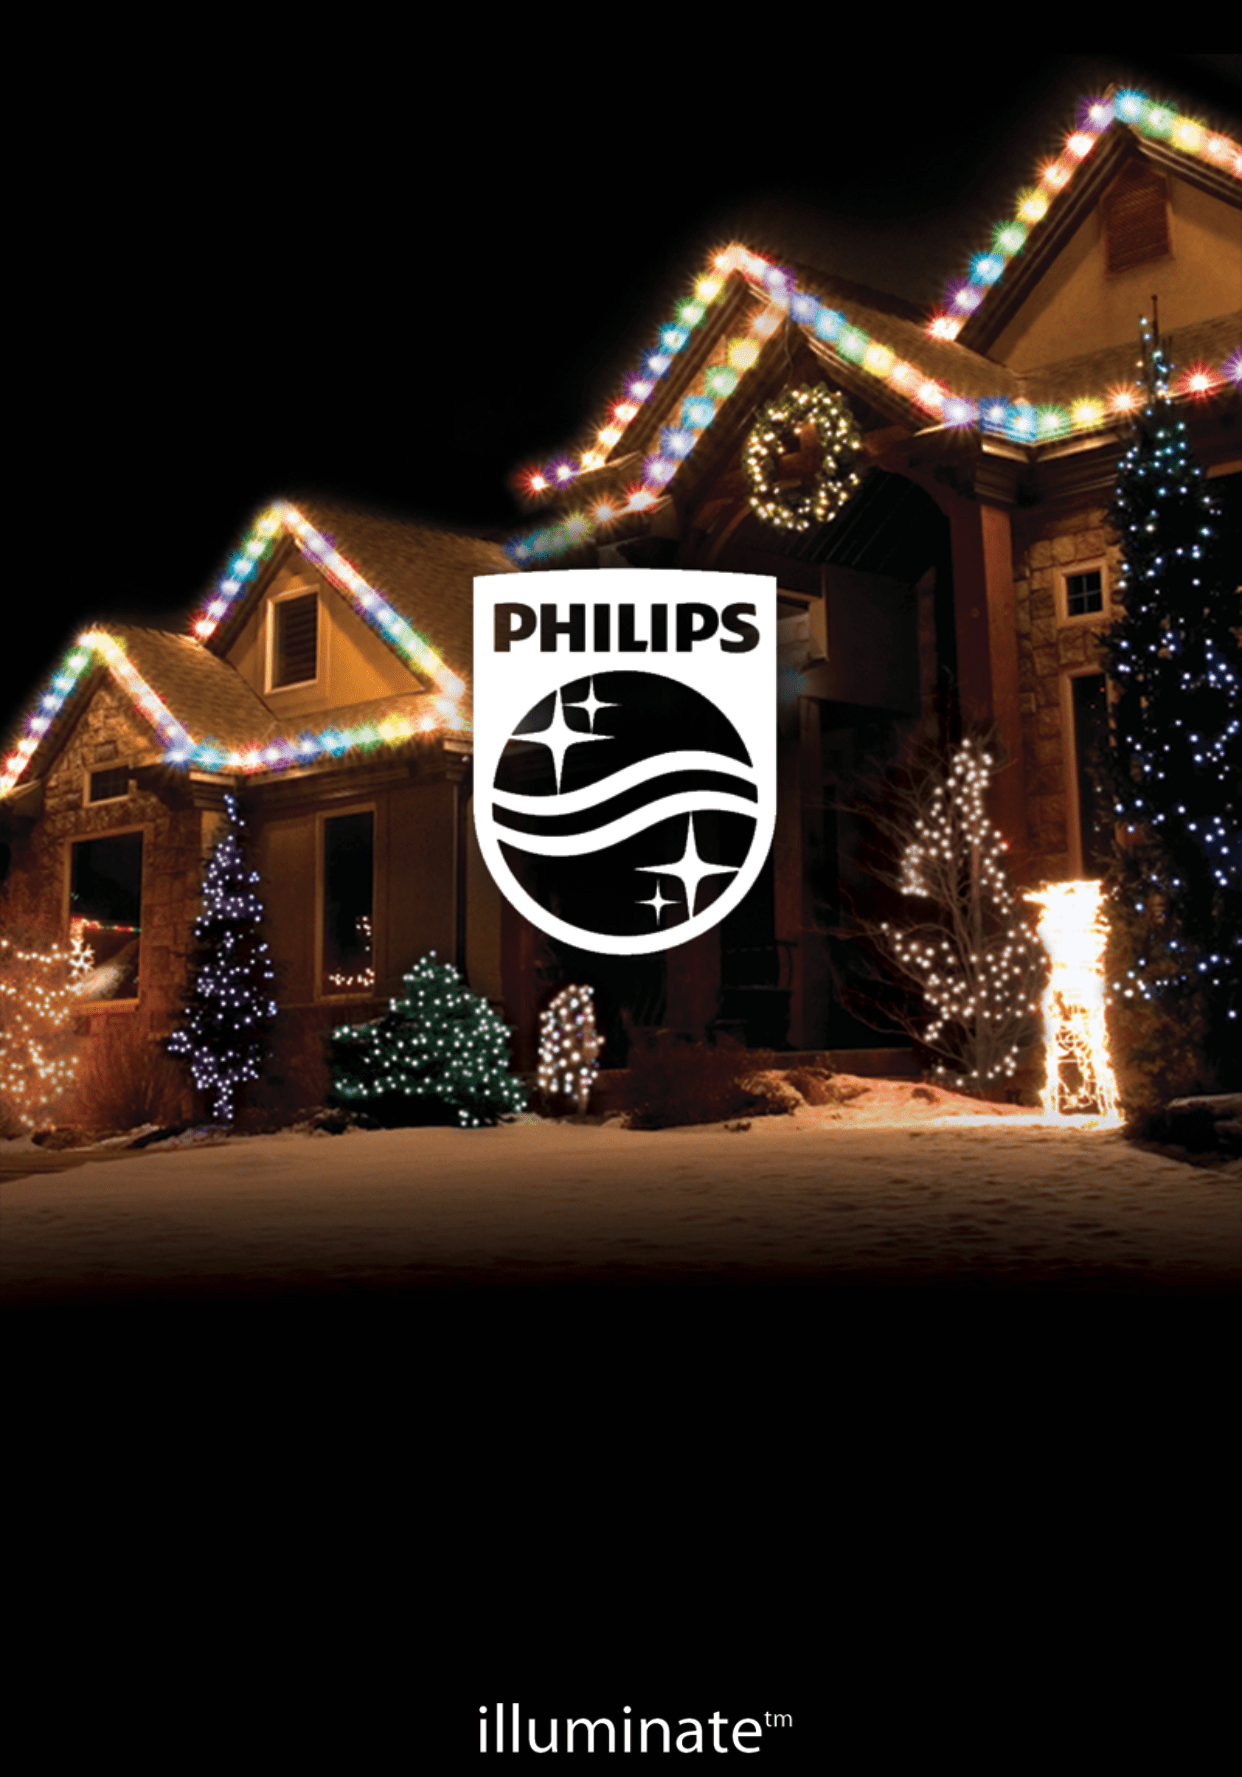 How To Fix Christmas Led Lights When Half Are Out how to reset philips illuminate lights | random thoughts